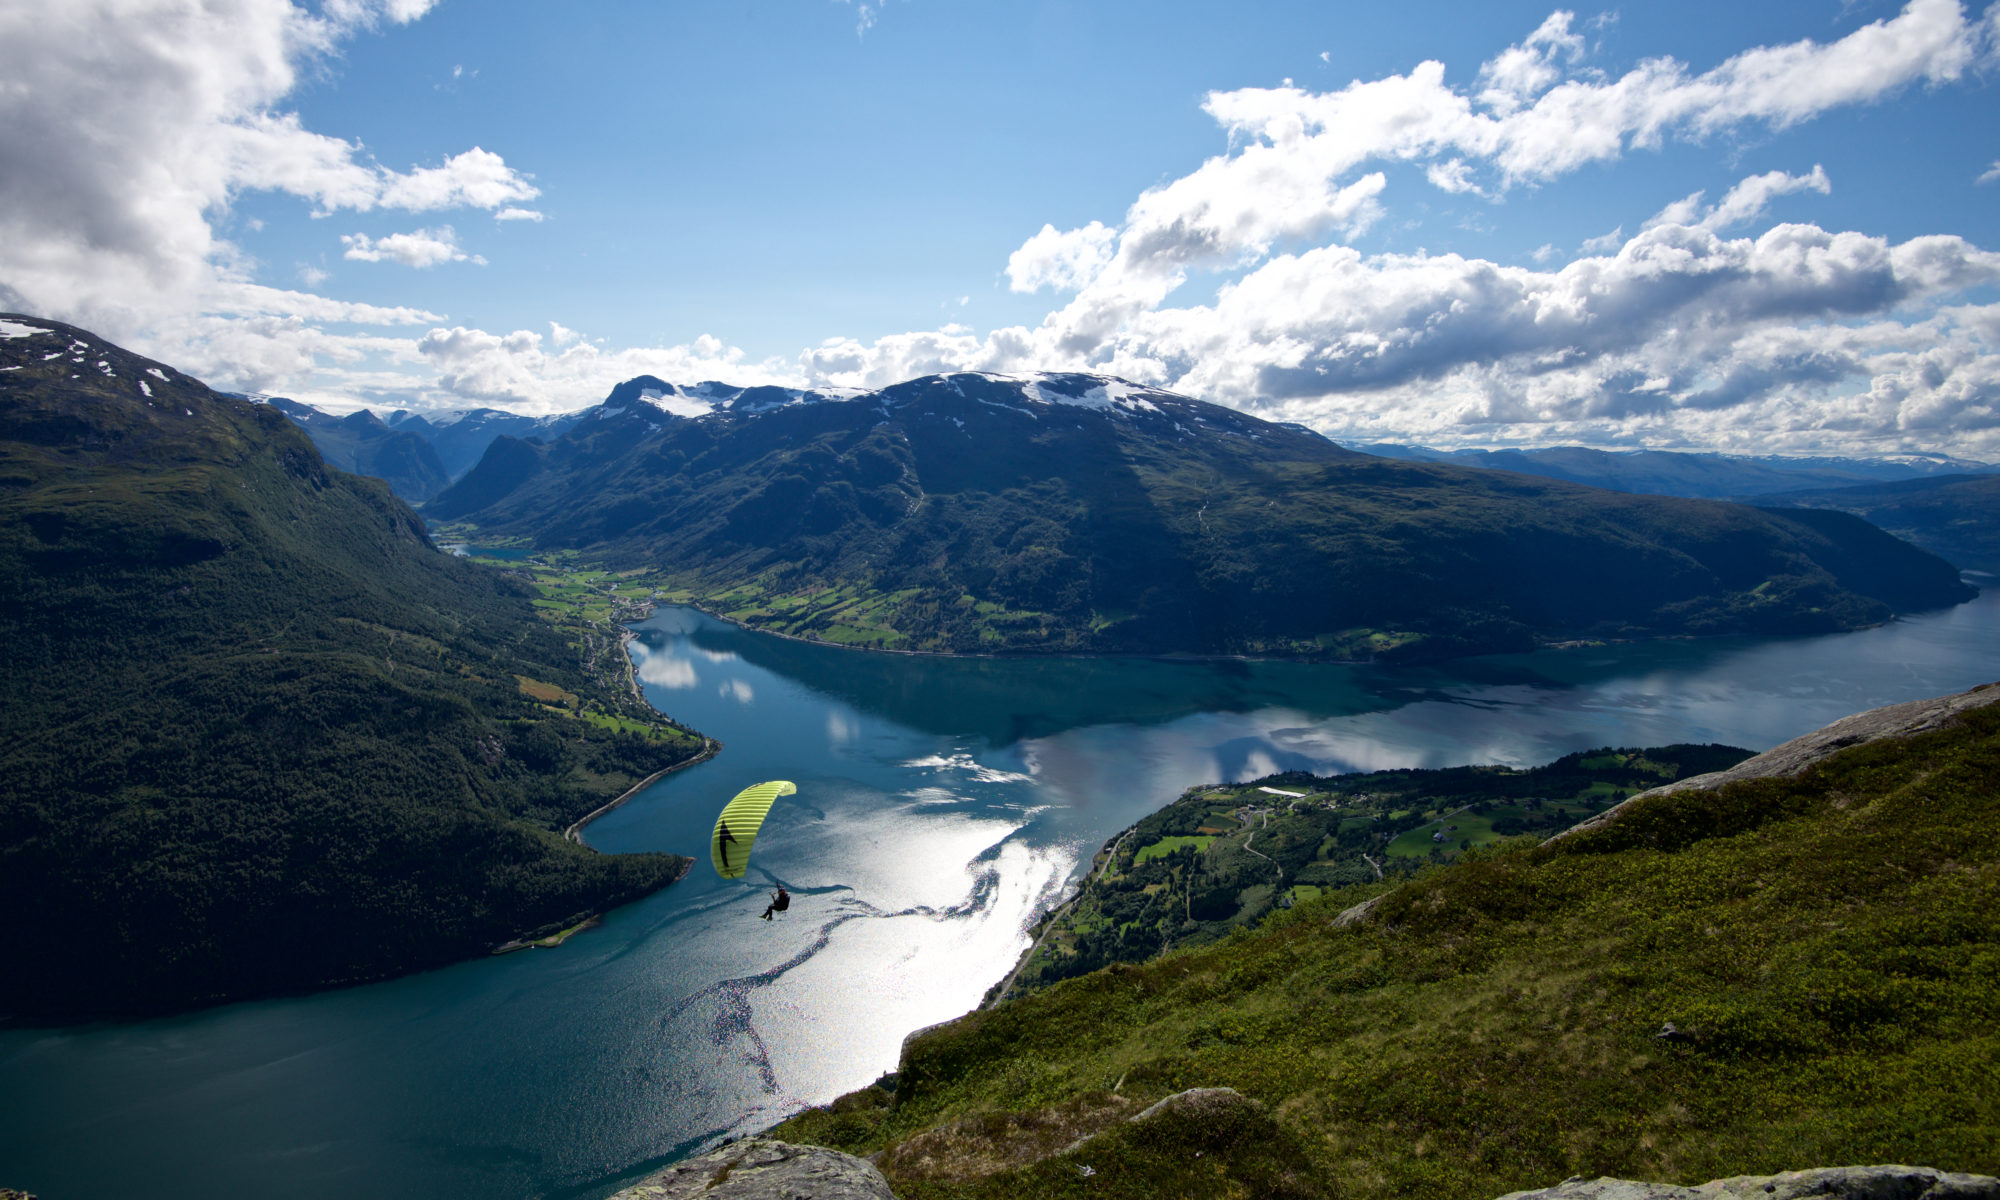 Download 130 Wallpapers from the Norwegian Fjords - For MAC and PC. View from Loen Skylift in Loen, Nordfjord